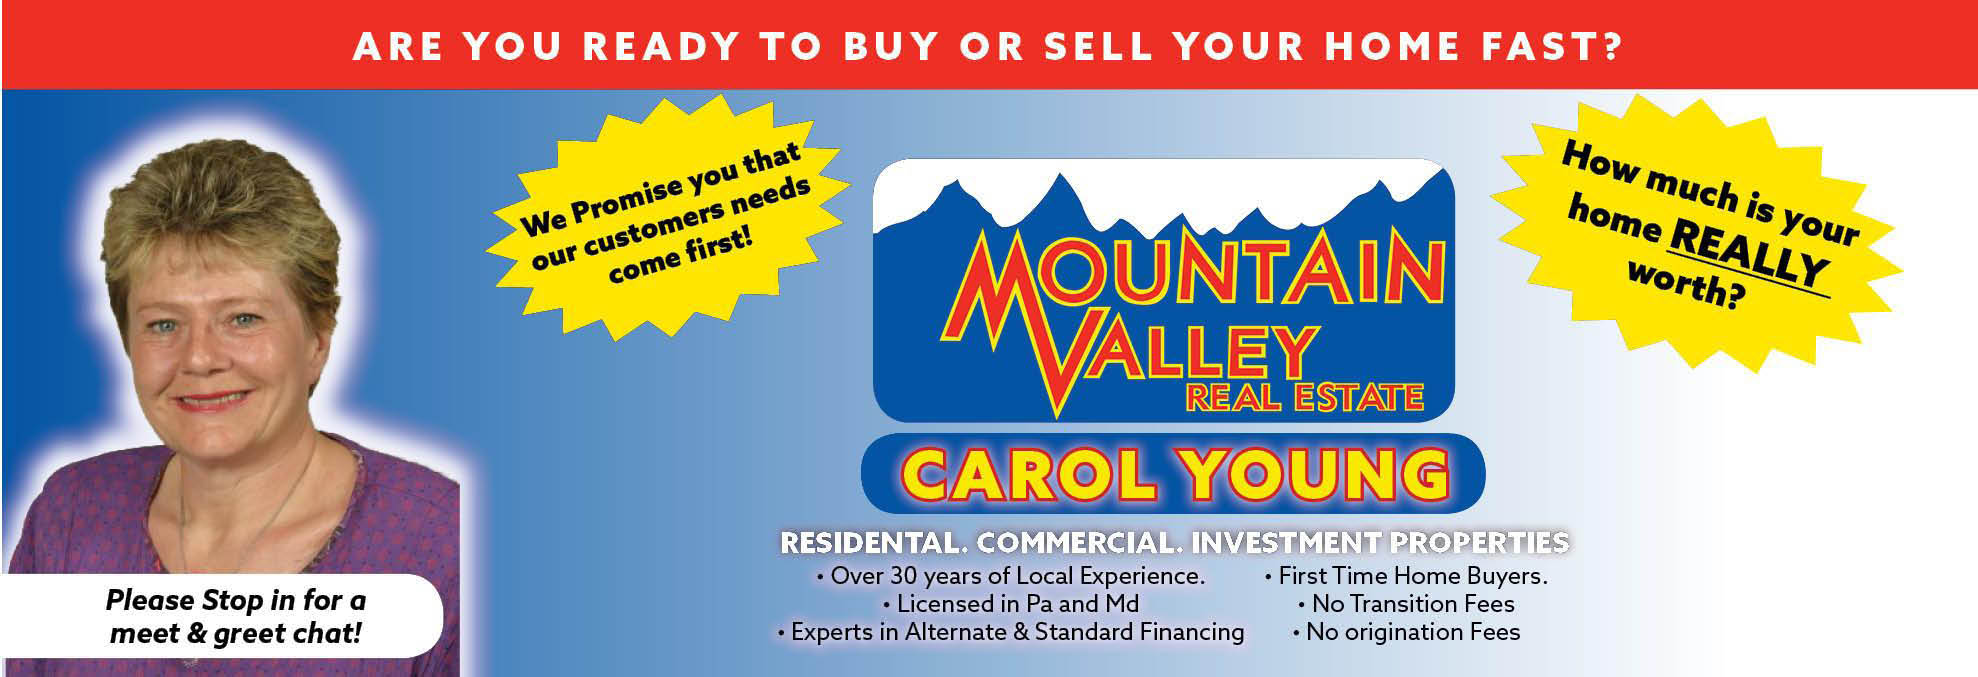 mountain valley real estate logo, buy, sell, house, financing